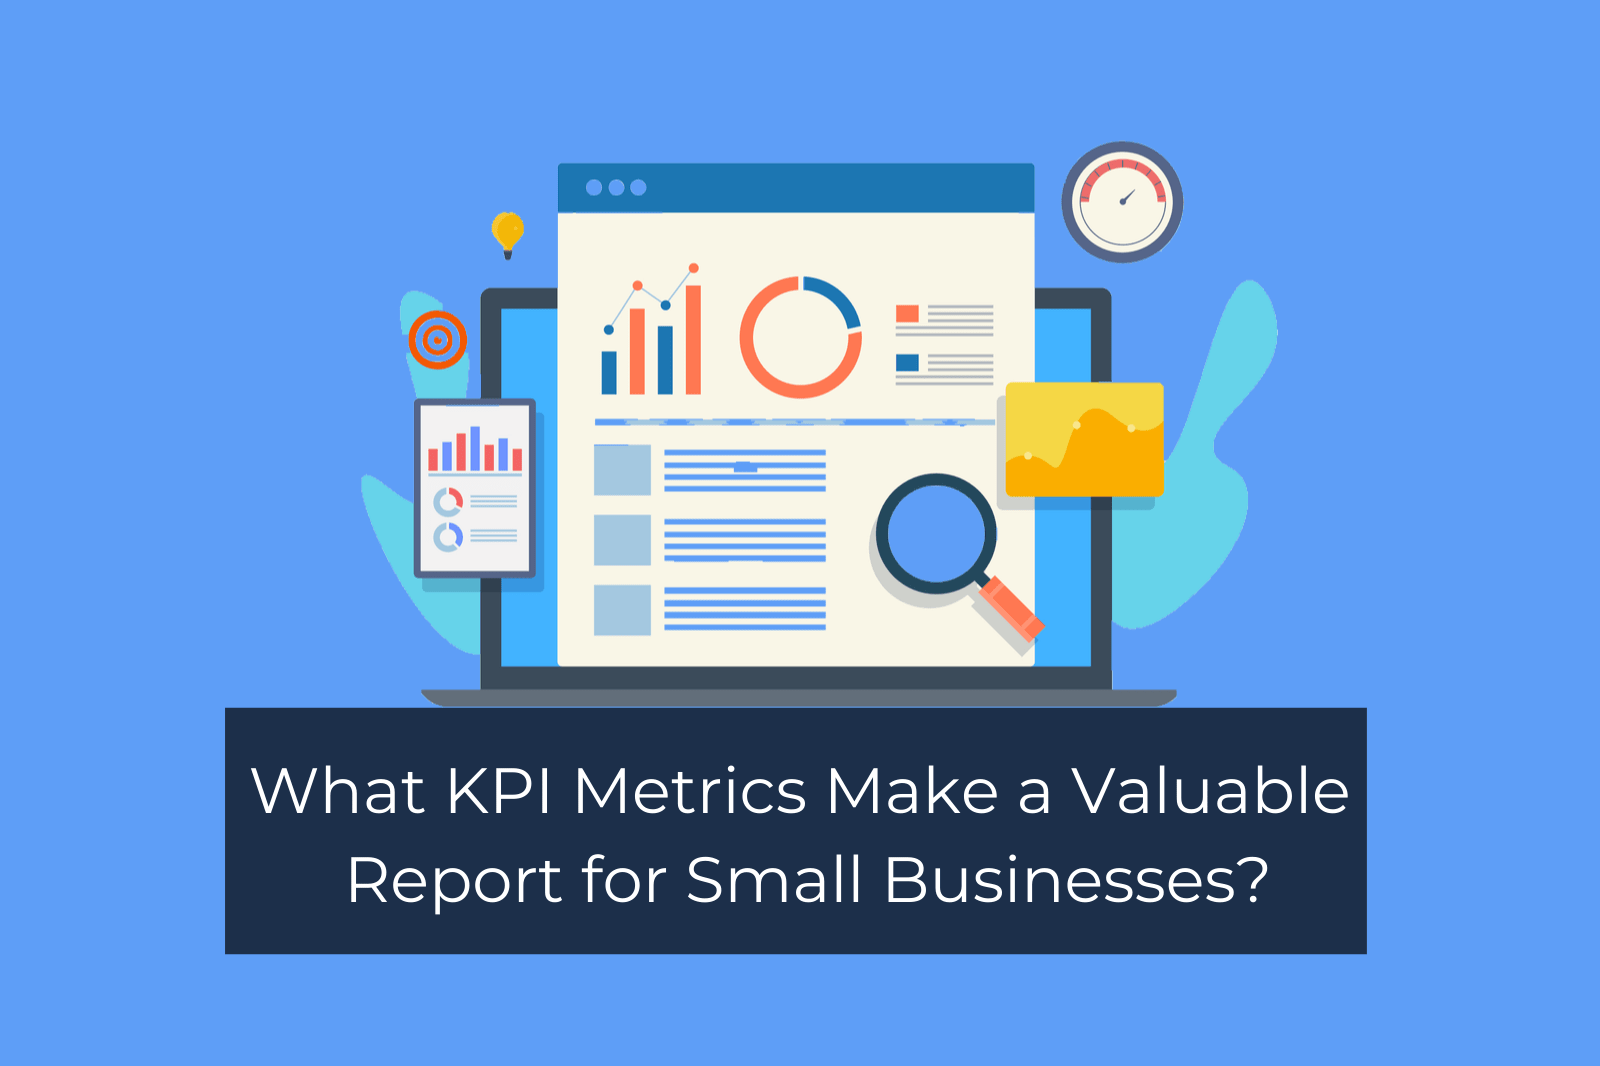 What KPI Metrics Make a Valuable Report for Small Business?